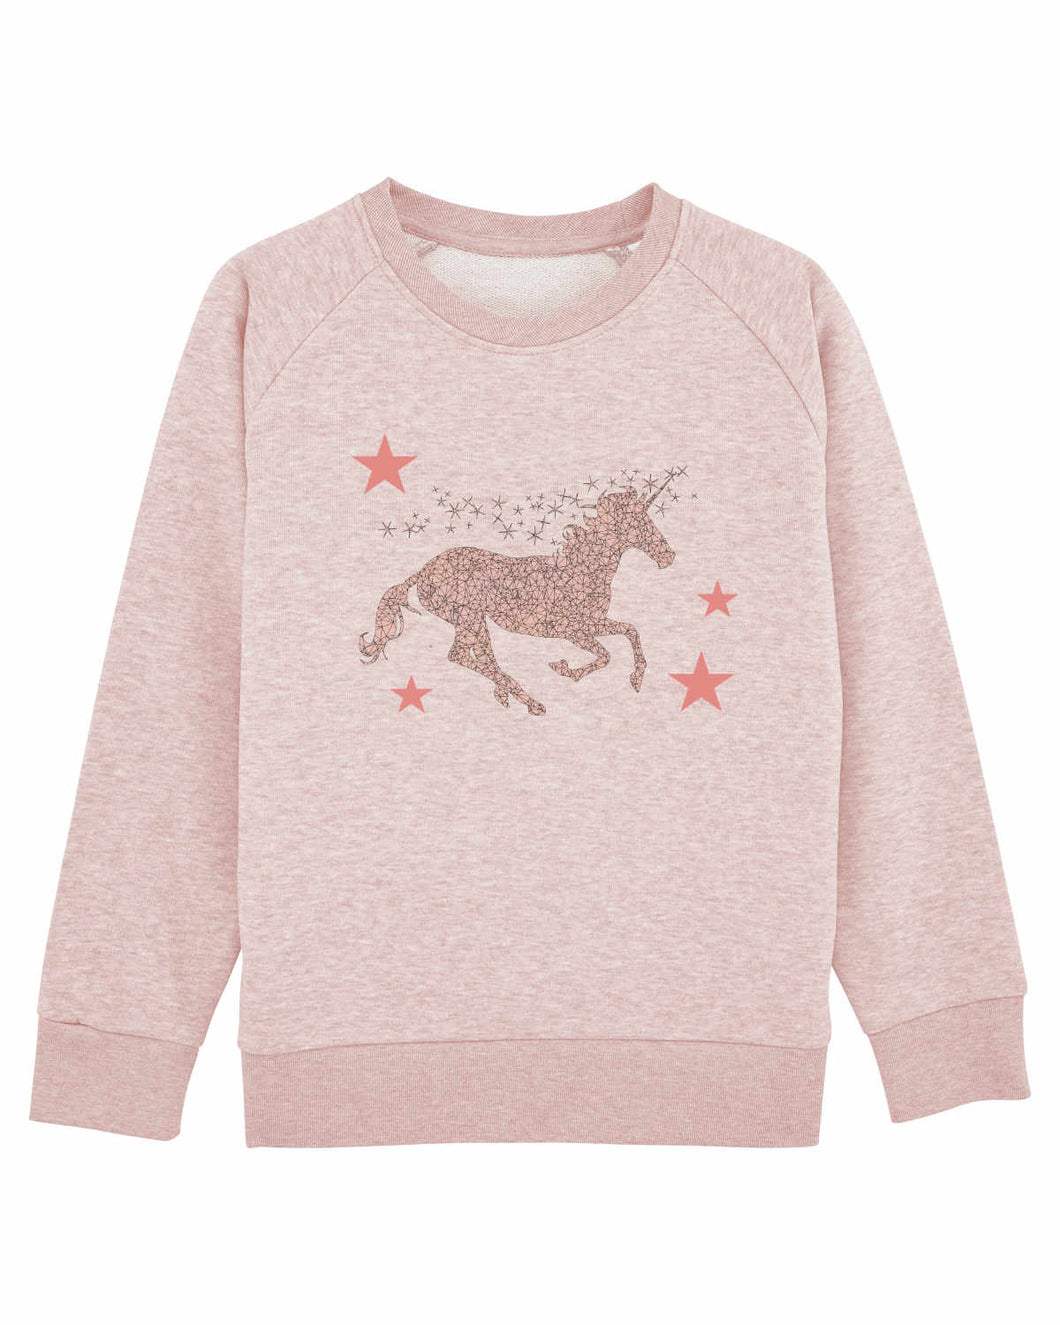 Miss Unicorn Pink Sweatshirt